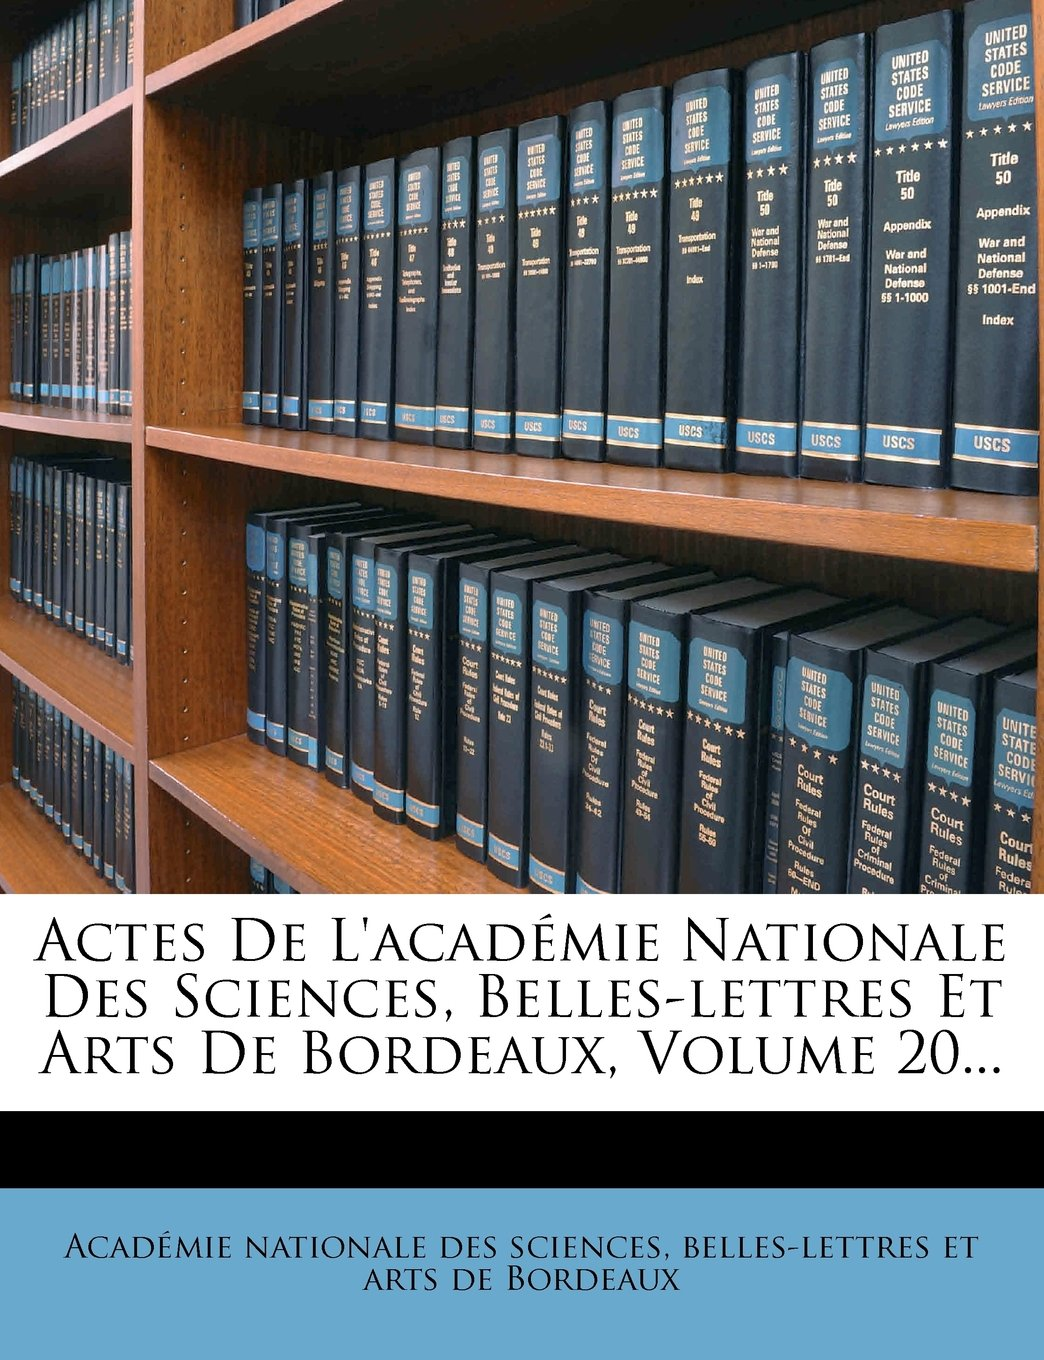 Download Actes De L'académie Nationale Des Sciences, Belles-lettres Et Arts De Bordeaux, Volume 20... (French Edition) PDF